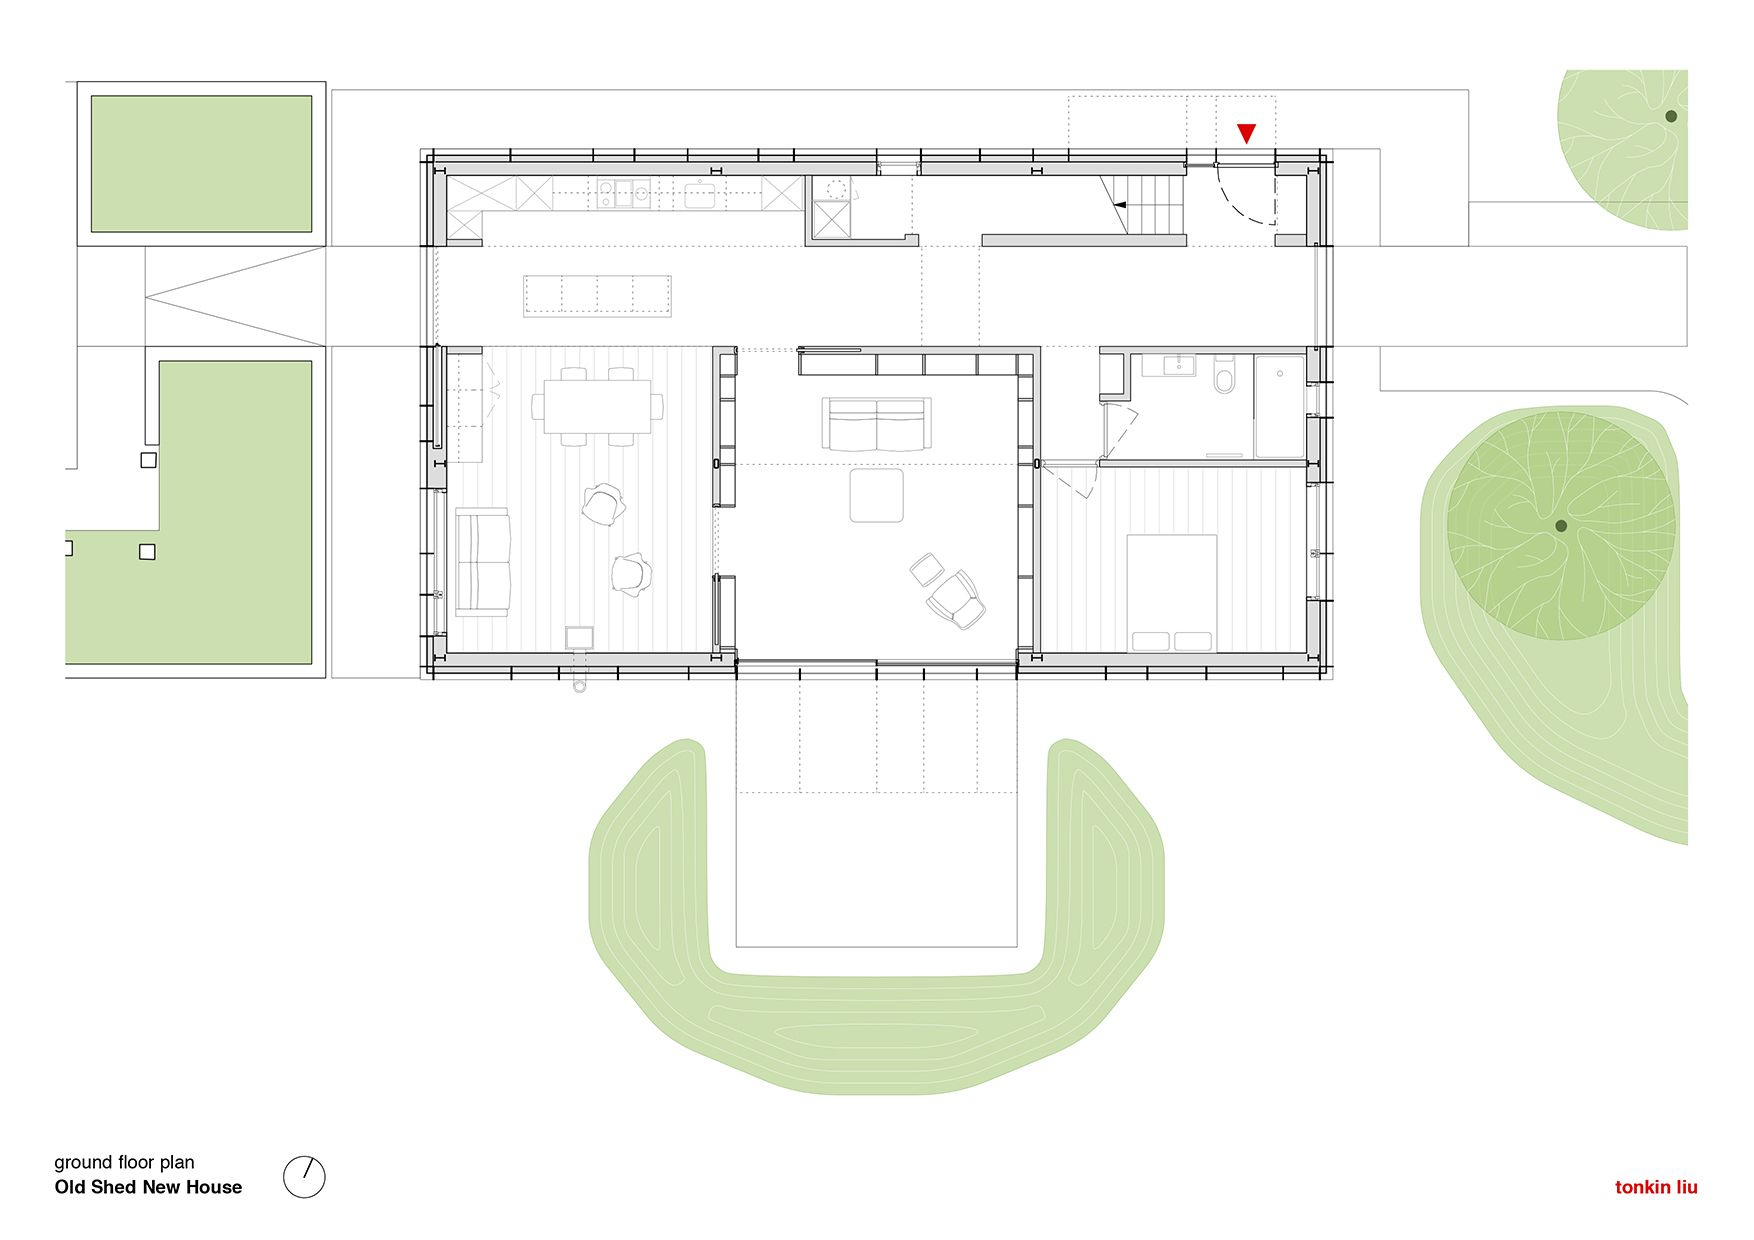 Image 23 Of 26 From Gallery Of Old Shed New House Tonkin Liu Ground Floor Plan 건물 아름다운 인테리어